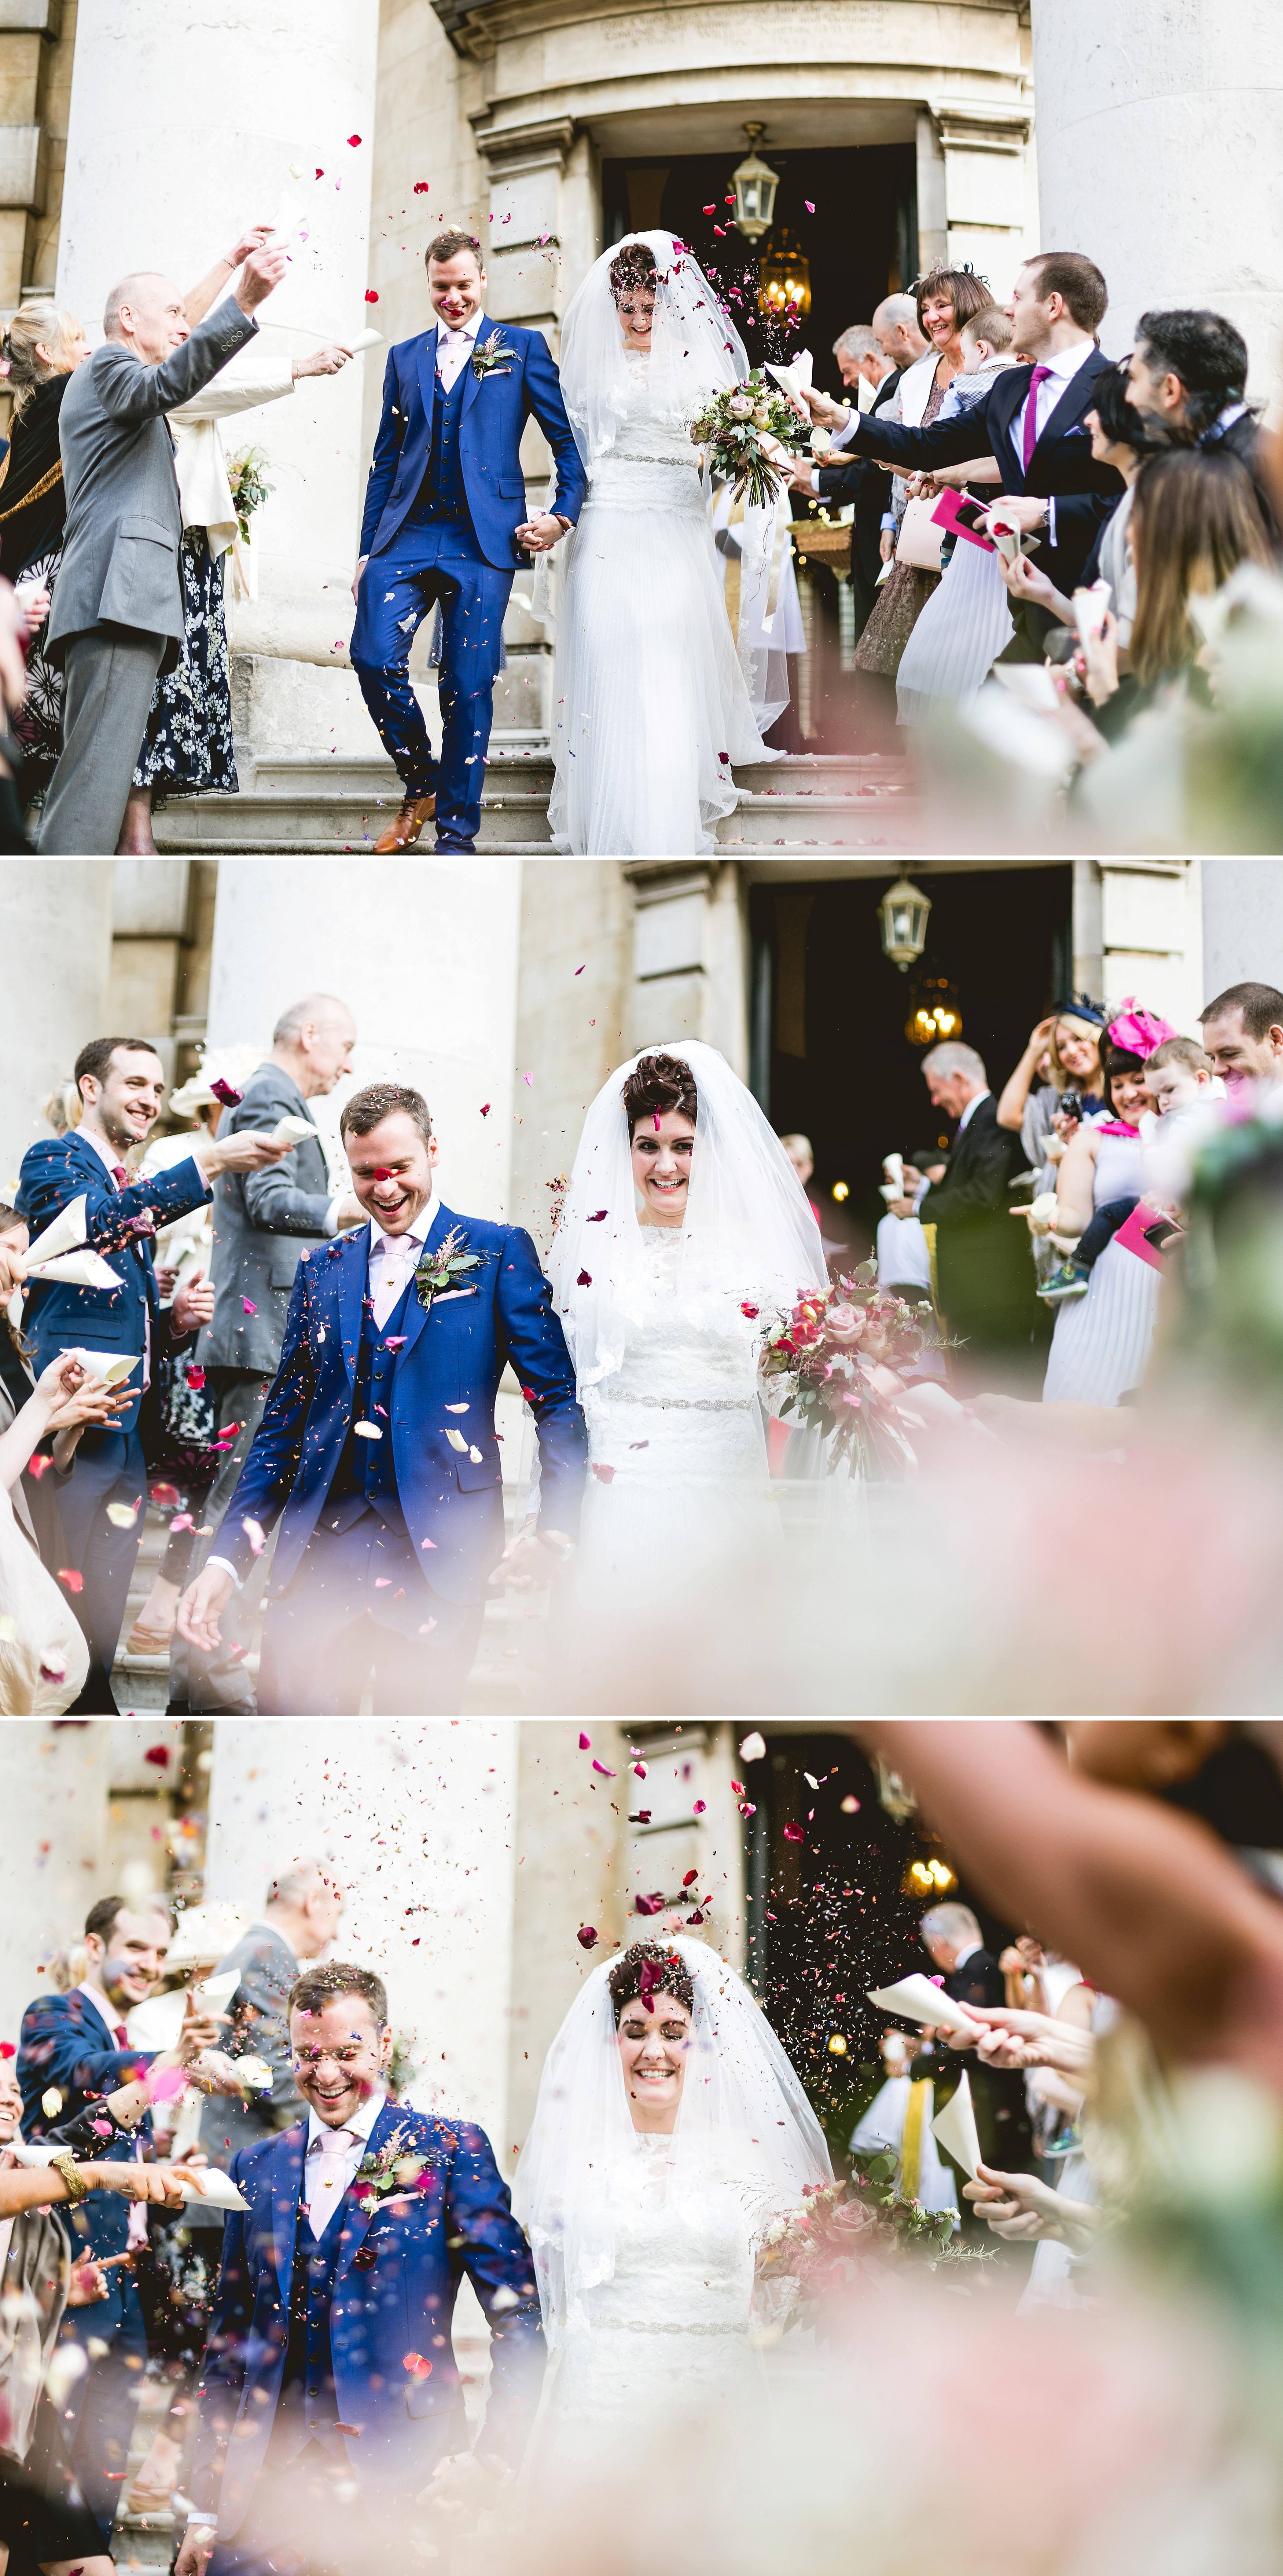 St Paul's church in Deptford wedding ceremony photos conffetti